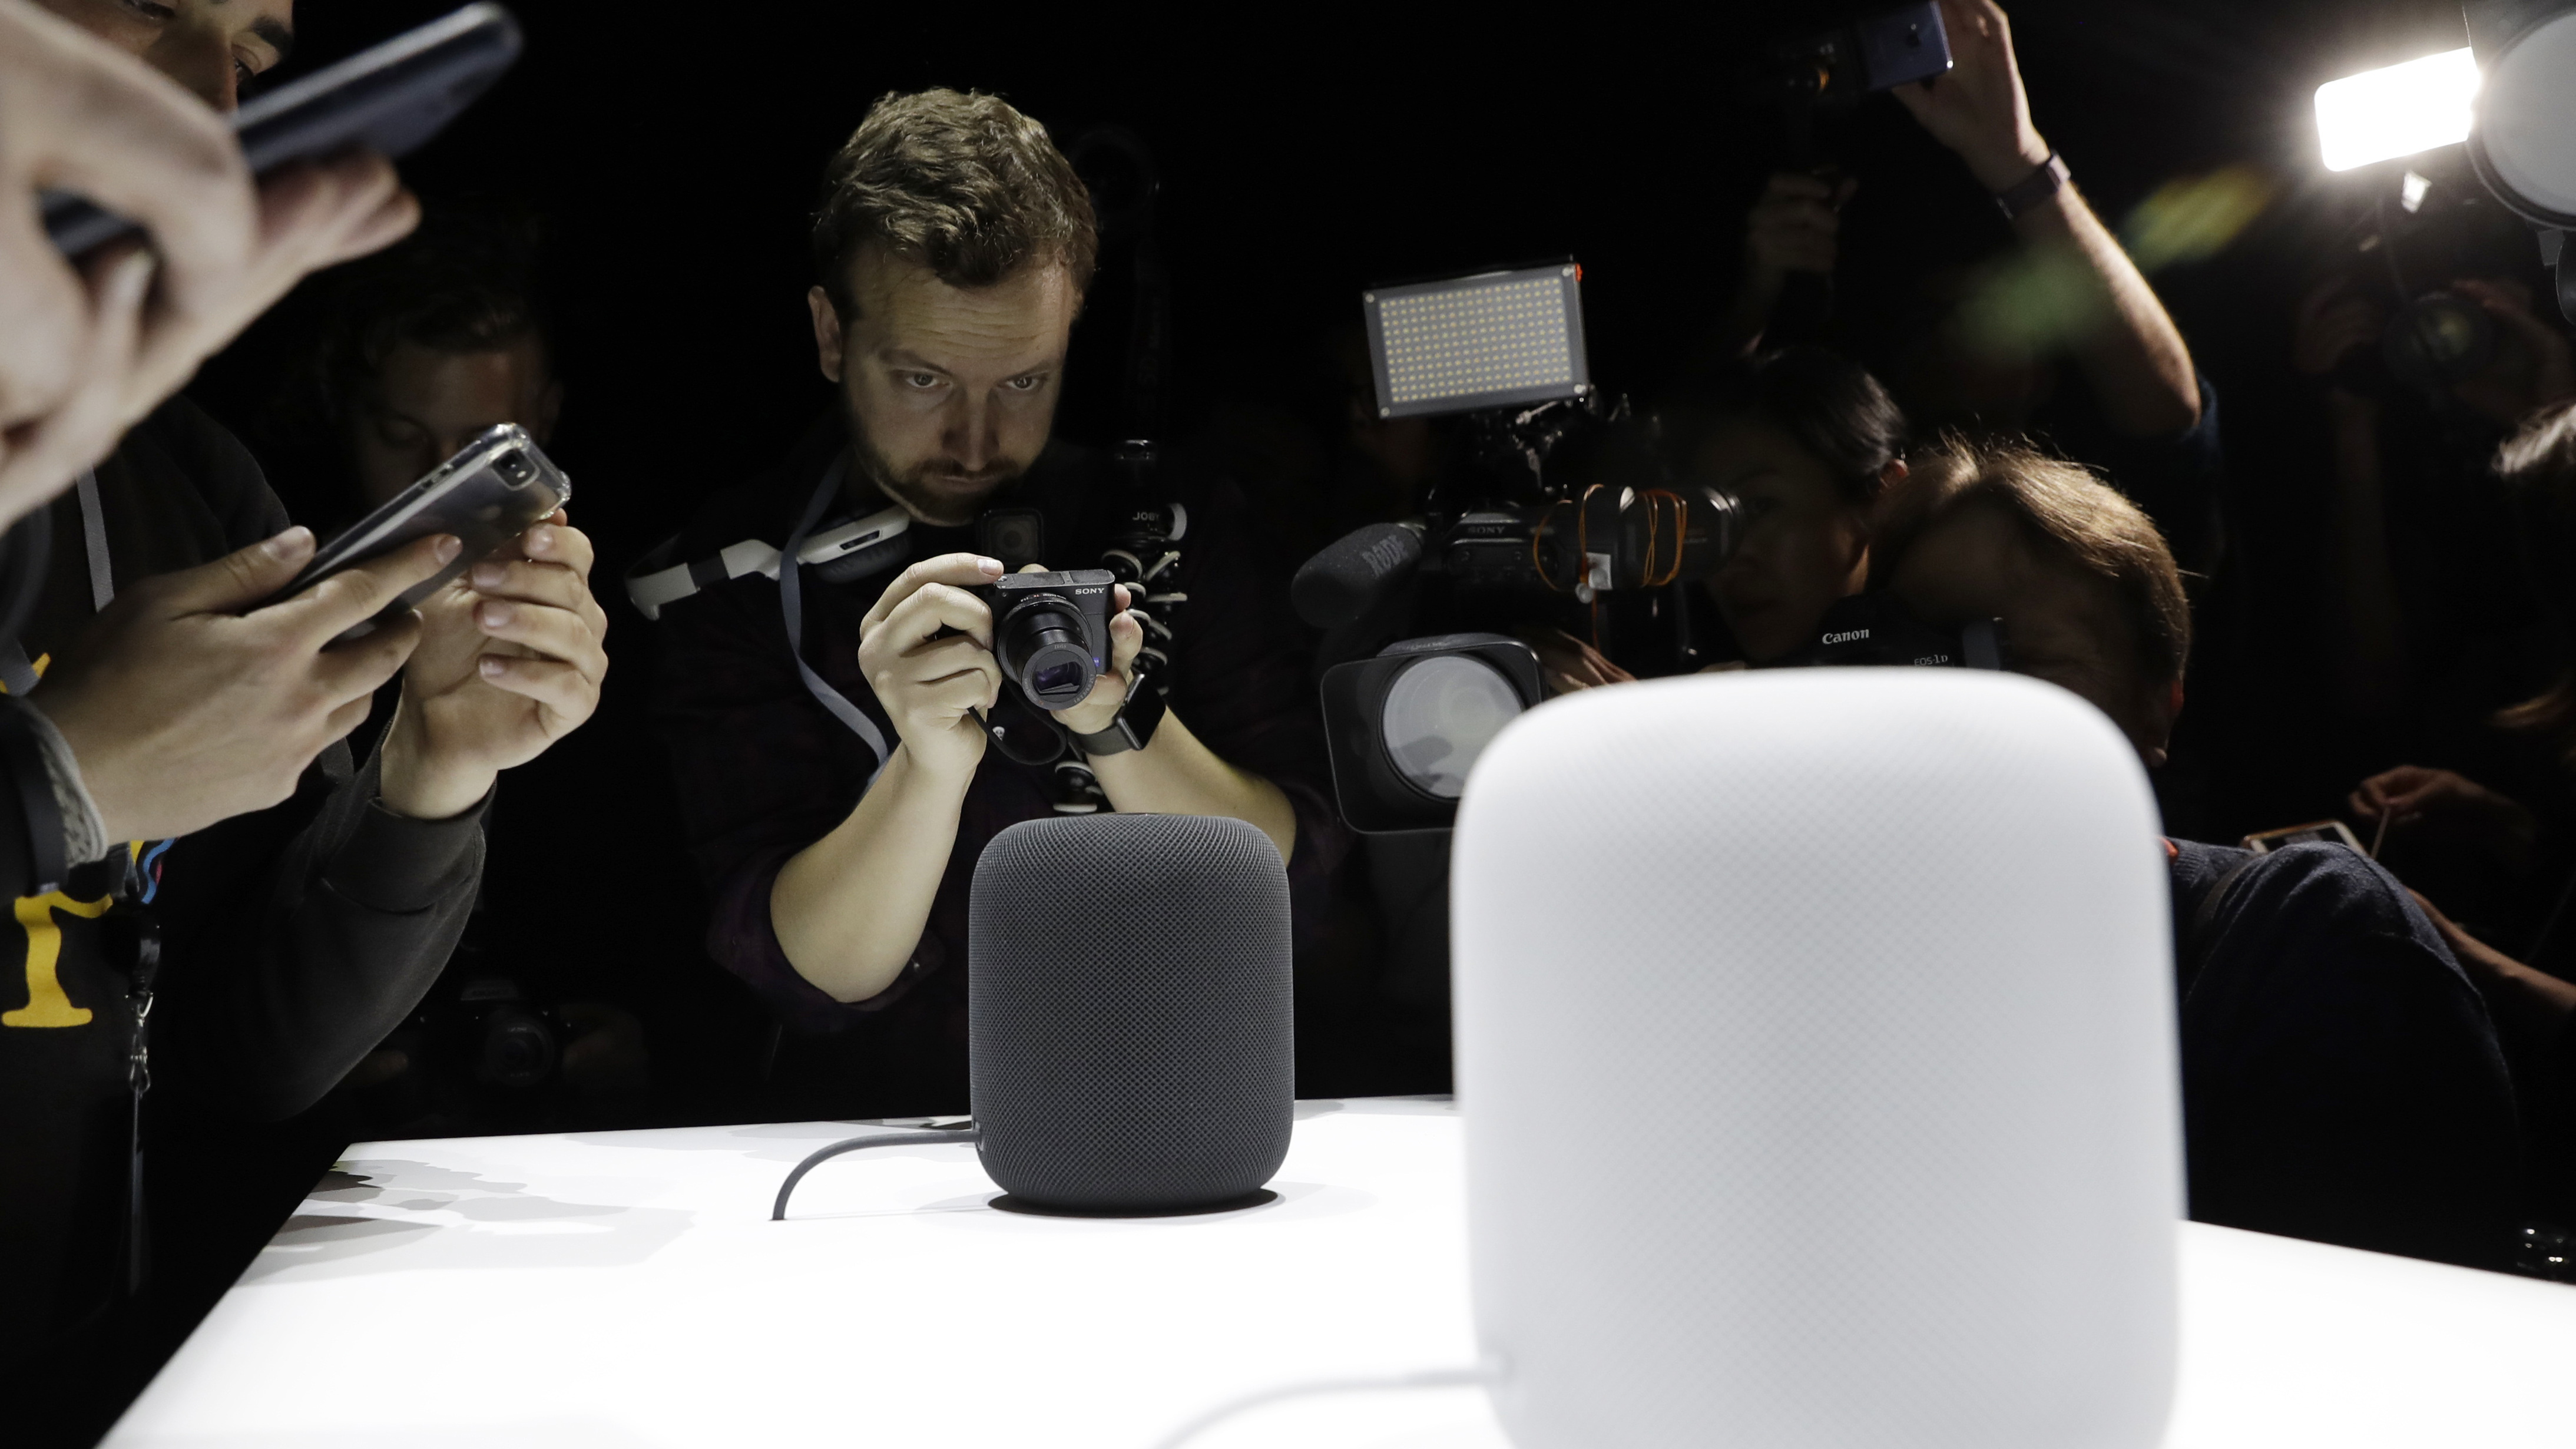 FILE - In this Monday, June 5, 2017, file photo, the HomePod speaker is photographed in a a showroom during an announcement of new products at the Apple Worldwide Developers Conference in San Jose, Calif. Pre-orders for the HomePod will begin Friday, Jan. 26, 2018, in the U.S, U.K. and Australia, two weeks before the speaker goes on sale in stores. (AP Photo/Marcio Jose Sanchez, File)